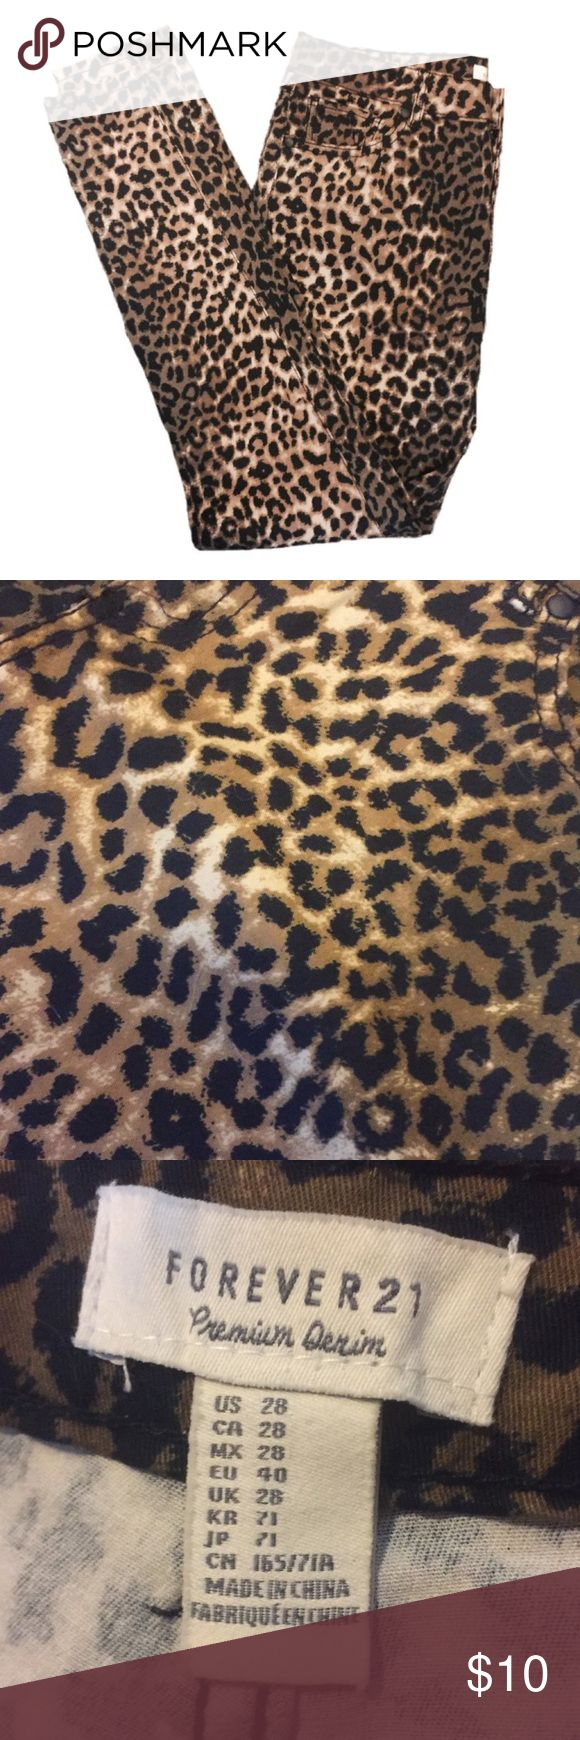 💗NEW LISTING💗 F21 Cheetah Jeans Everyone will know you're wild in these pants! These Forever 21 cheetah jeans are perfect for a night out. They're perfect condition and in the size 28. They aren't denim but they are stretchy and look like denim. Forever 21 Jeans Skinny